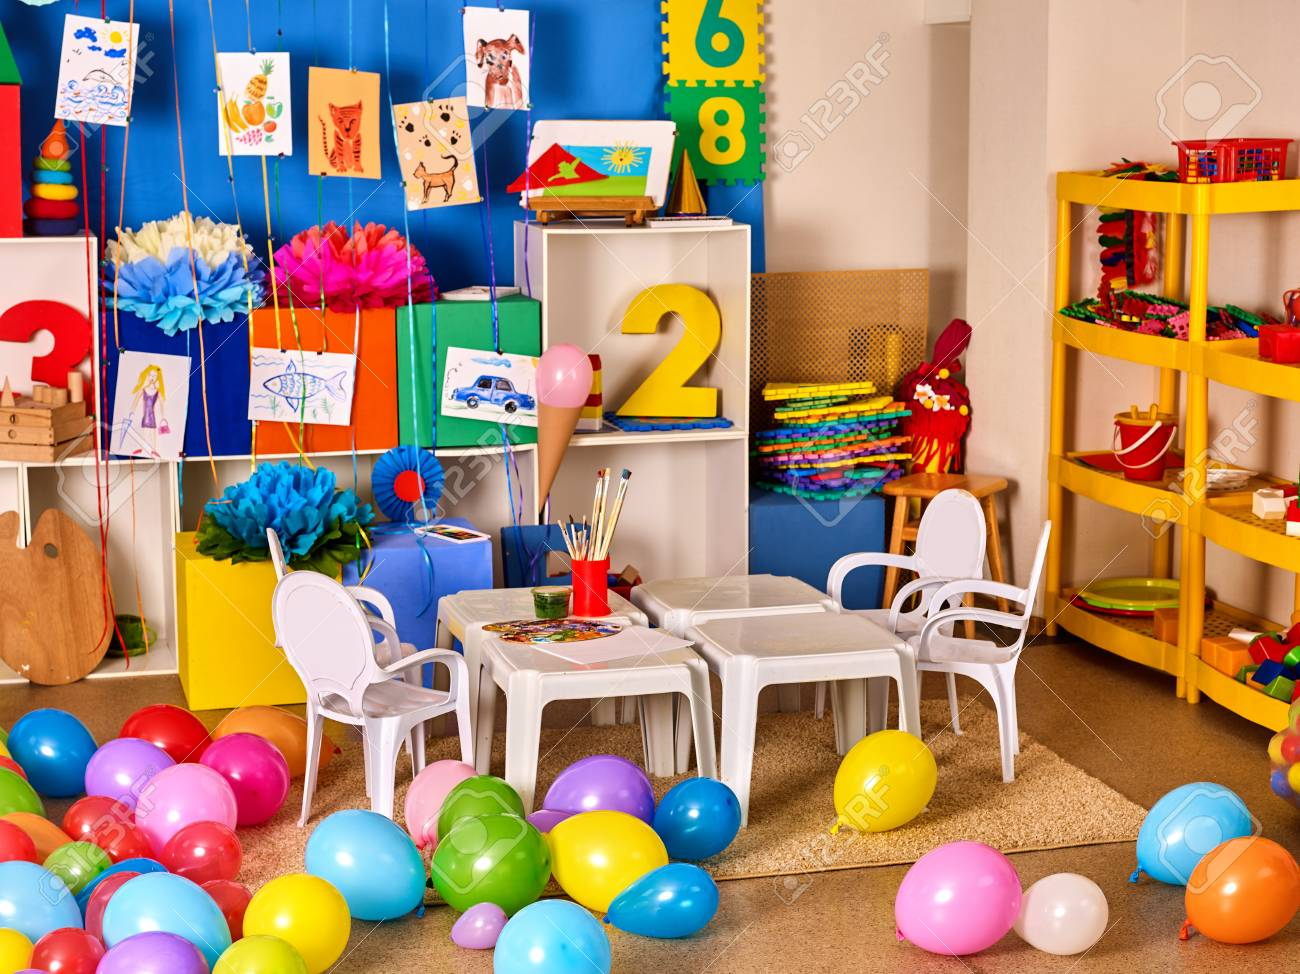 Kindergarten Interior Decoration Child Picture On Wall Preschool